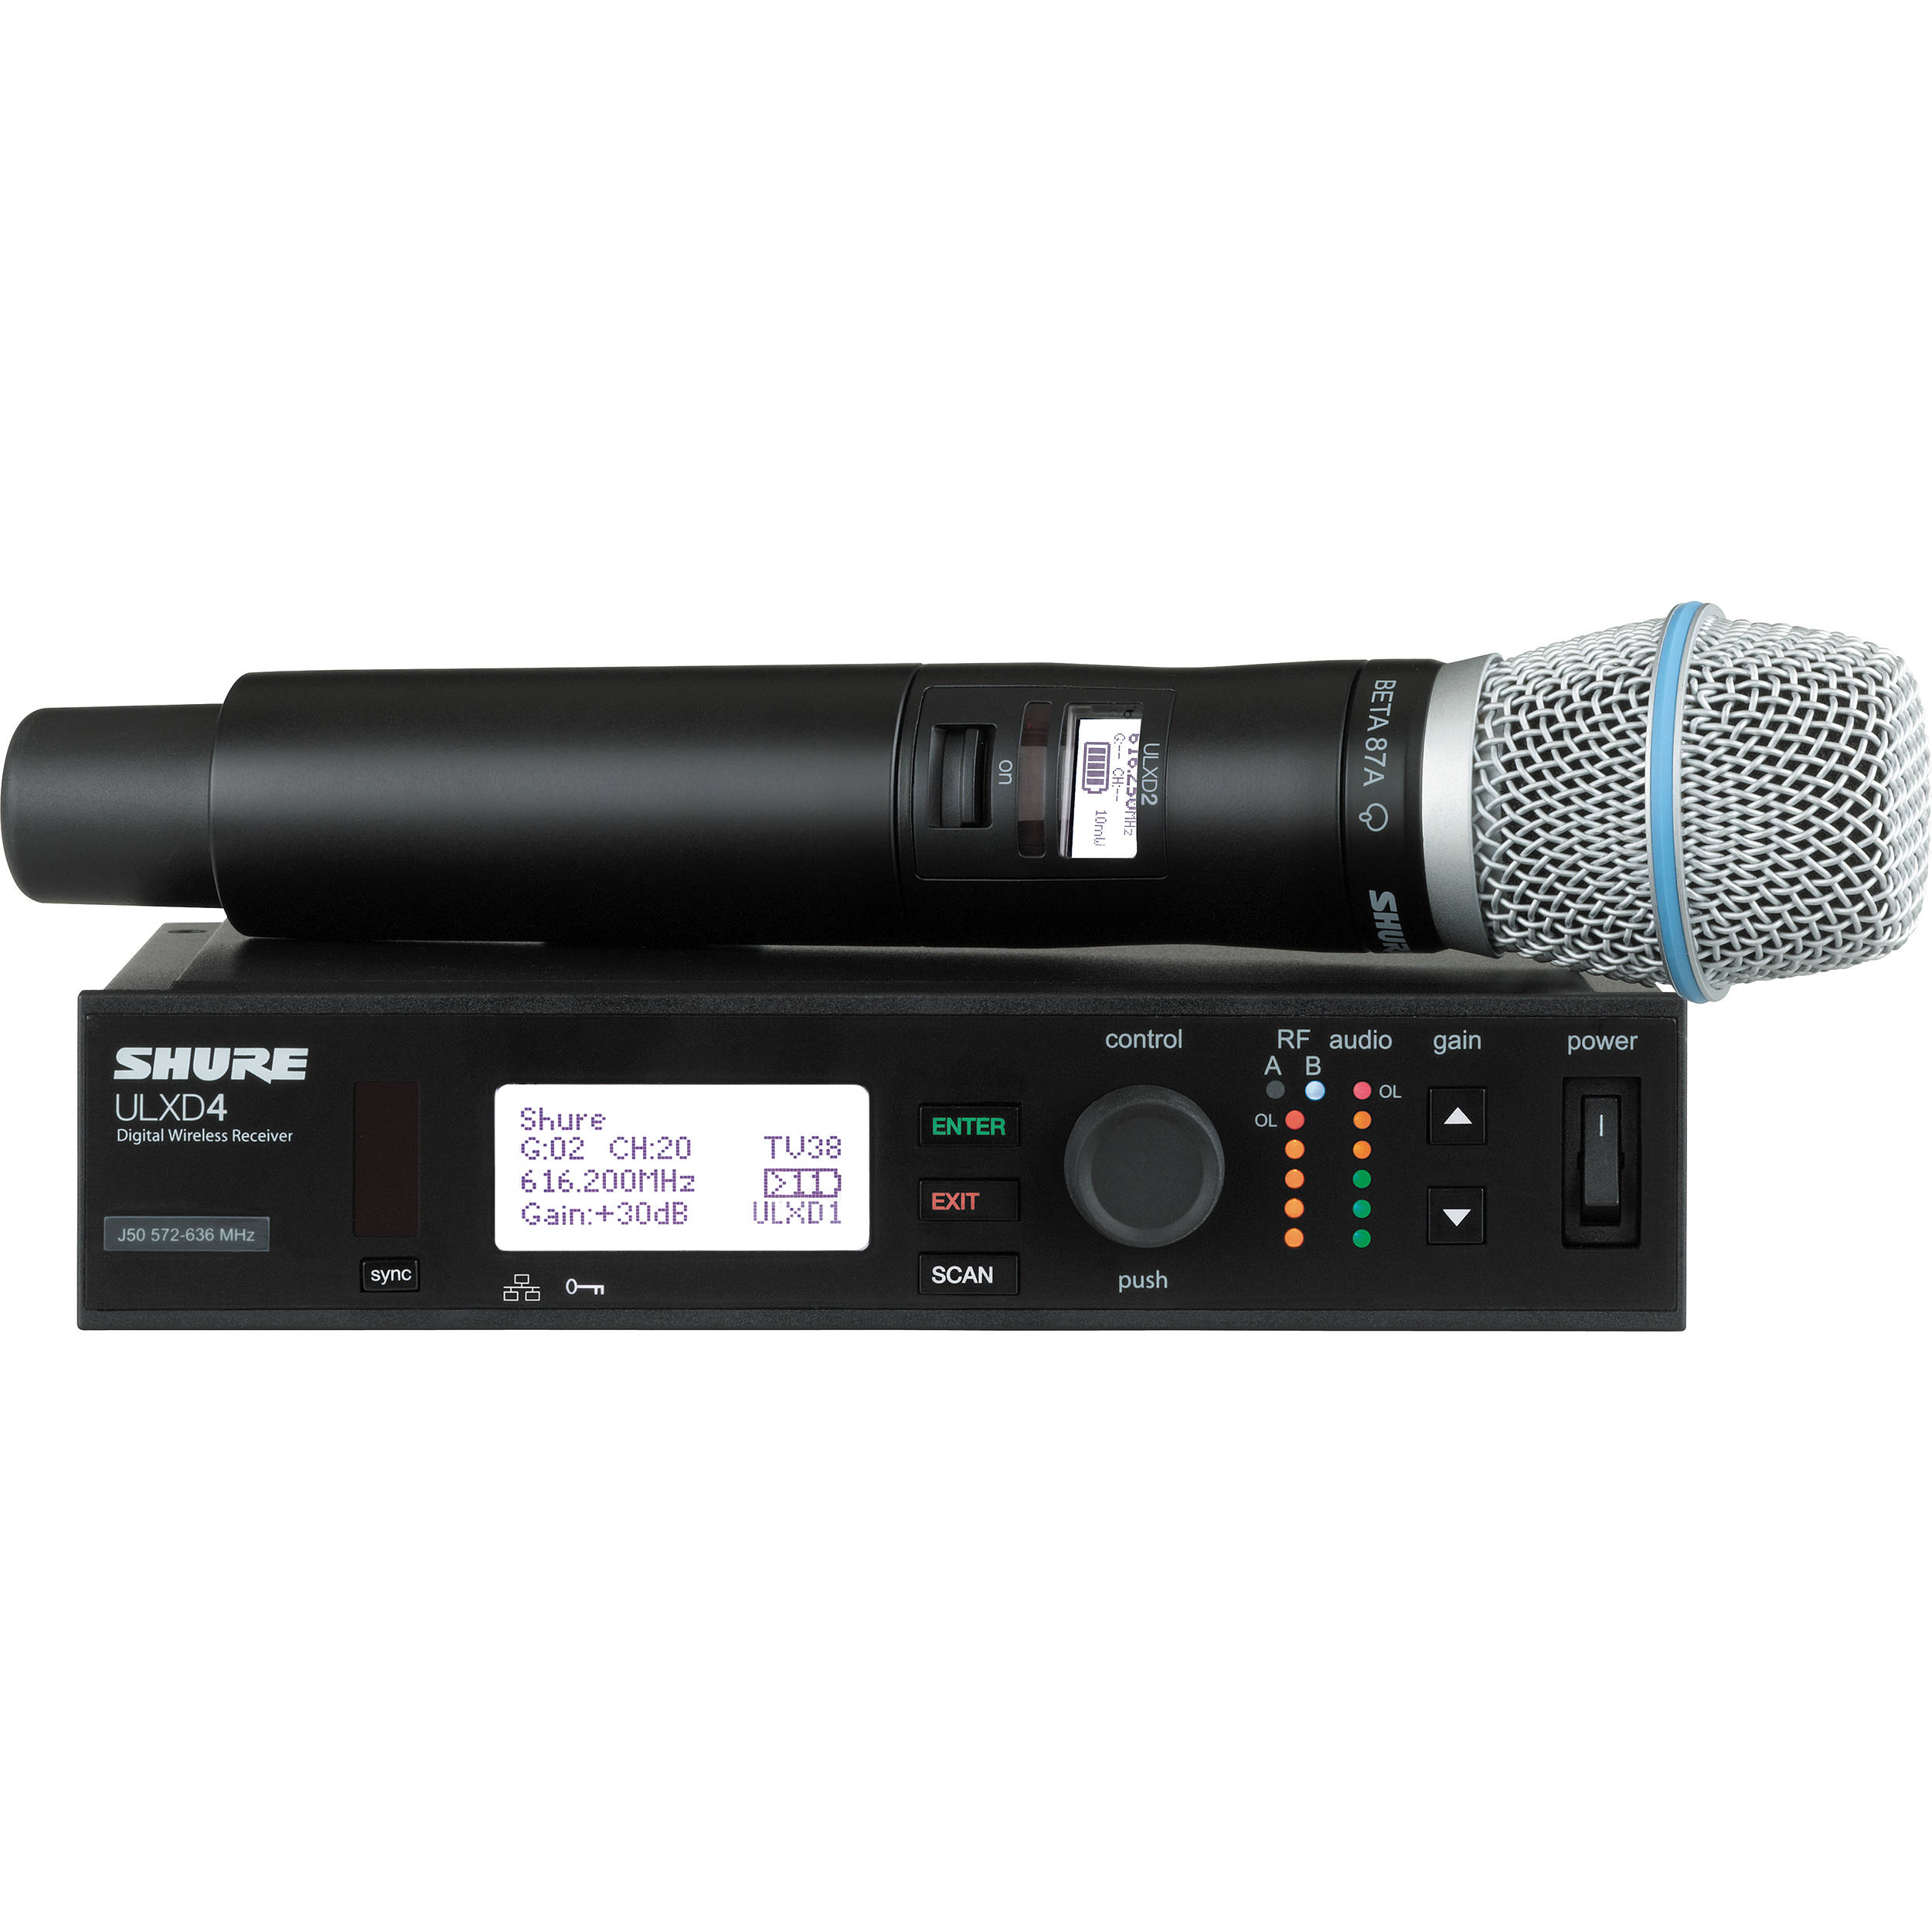 shure ulx d digital wireless handheld microphone ulxd24 b87a l50. Black Bedroom Furniture Sets. Home Design Ideas